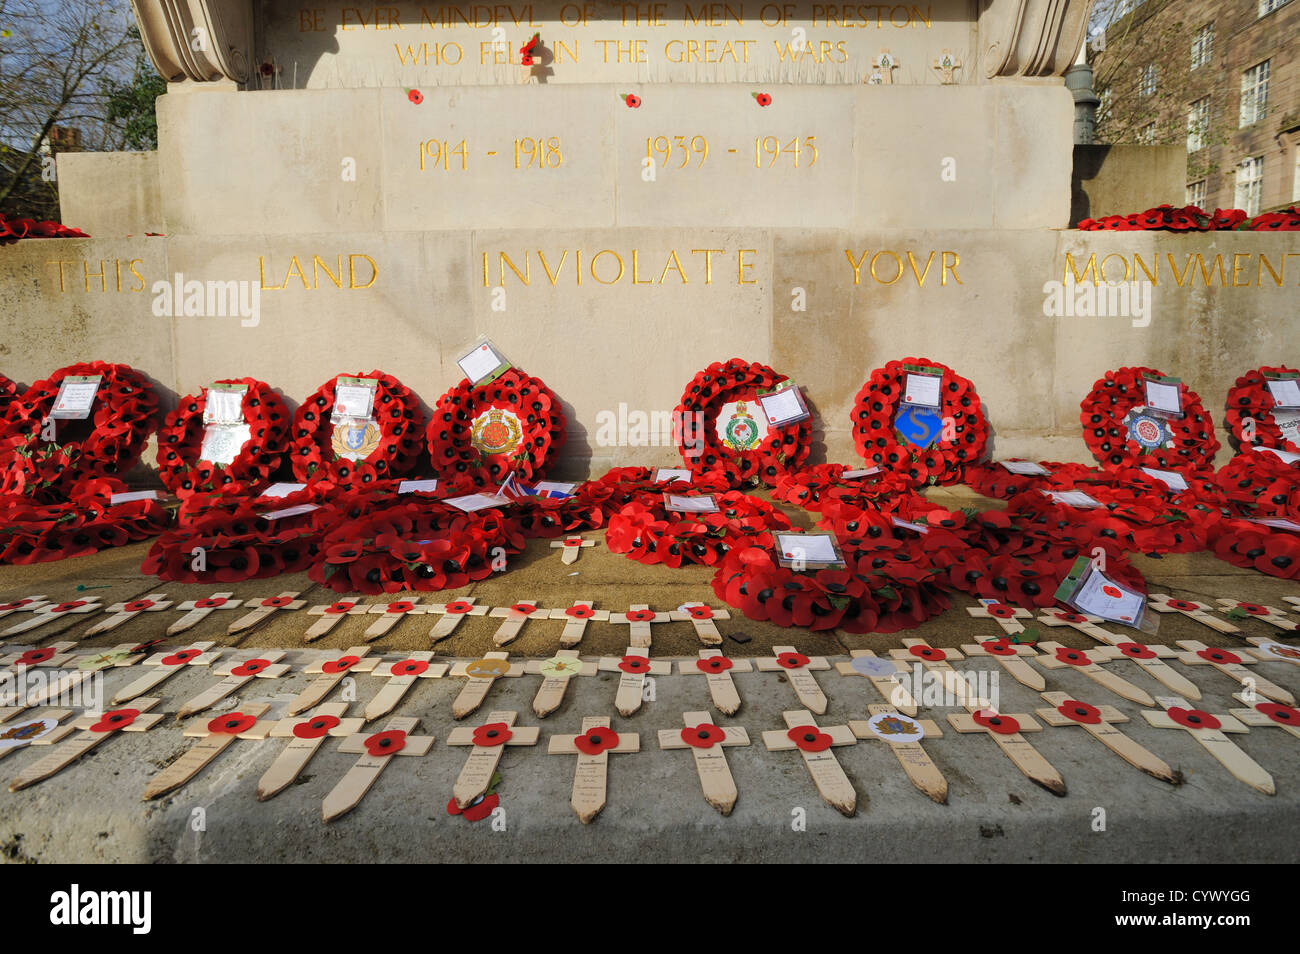 Reefs on the Cenotaph, Remembrance Day - Stock Image